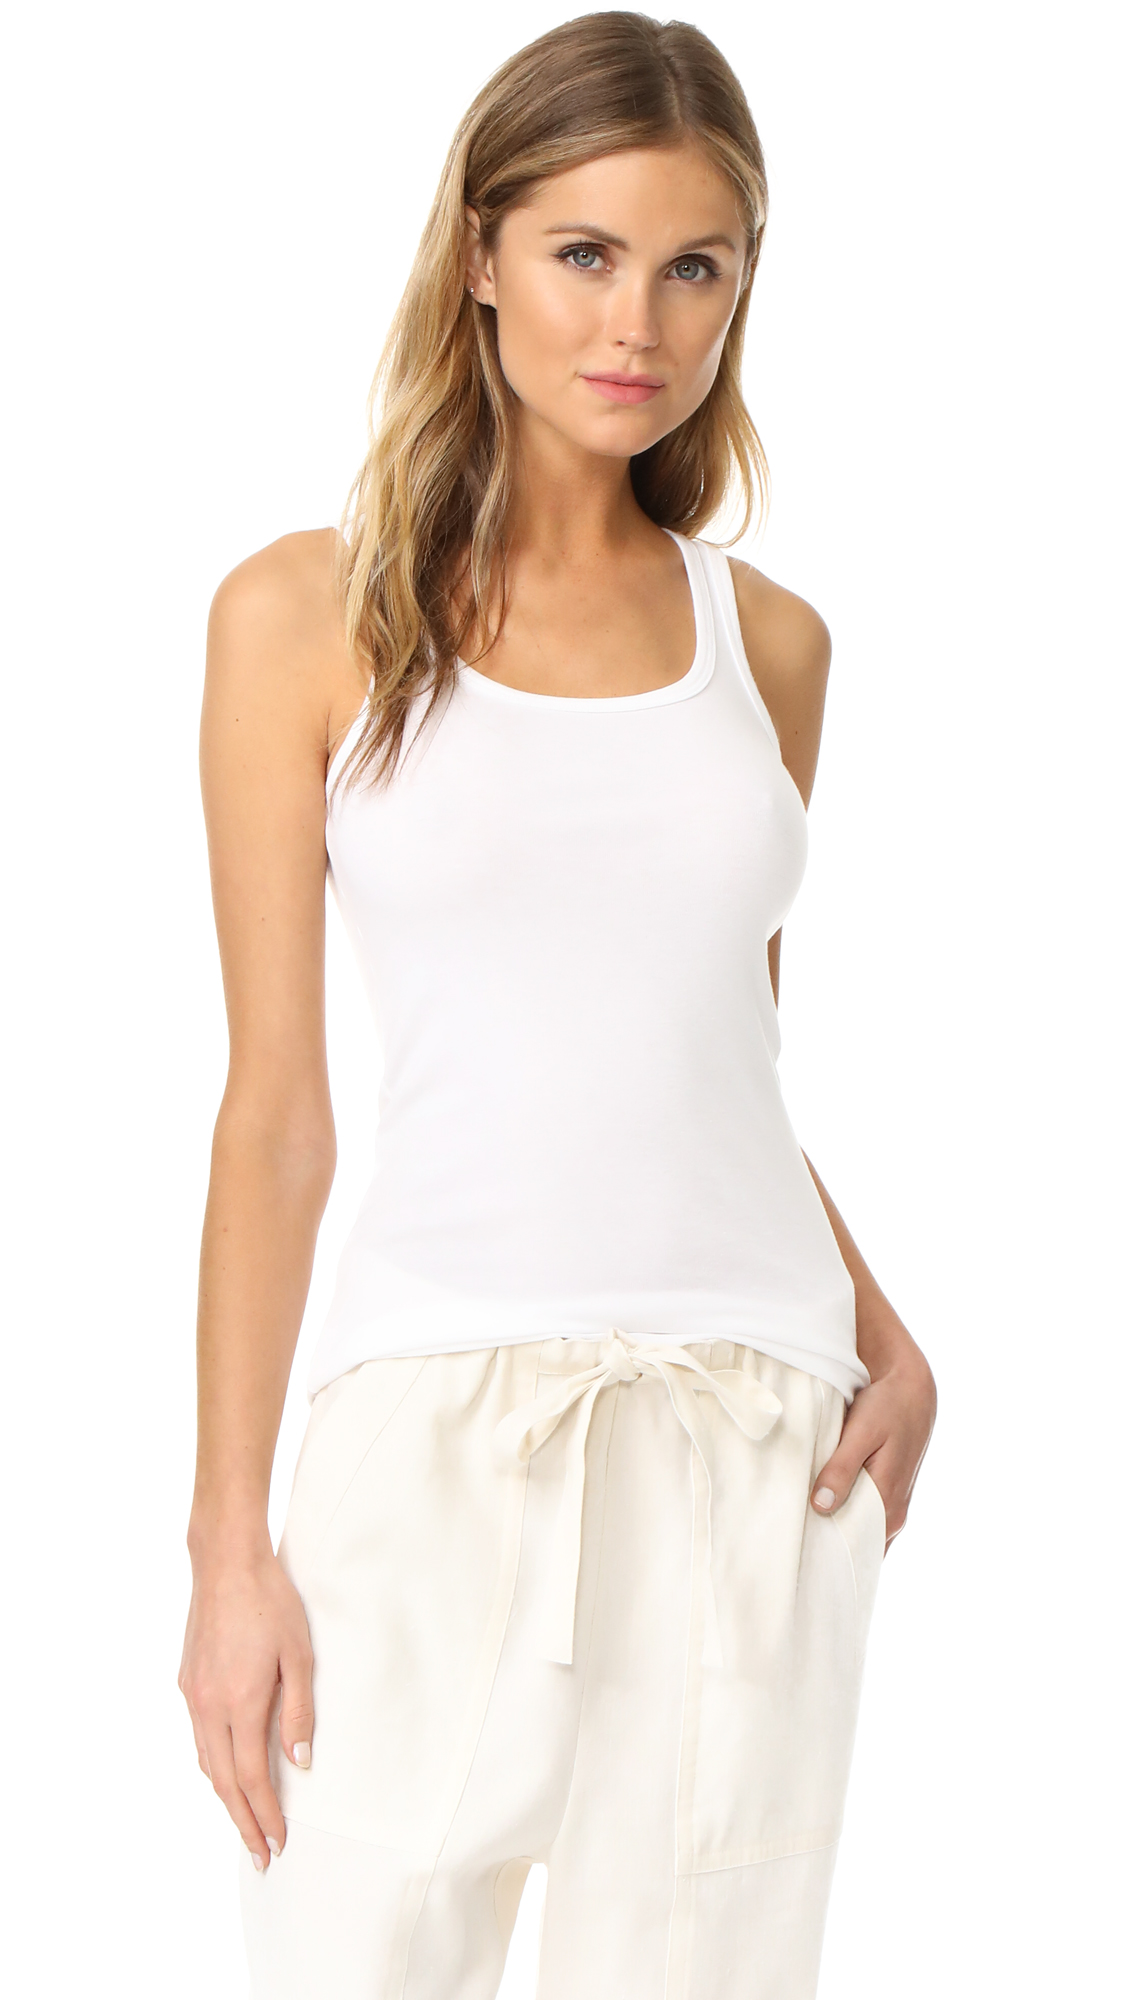 Splendid 1x1 Tank Top - White